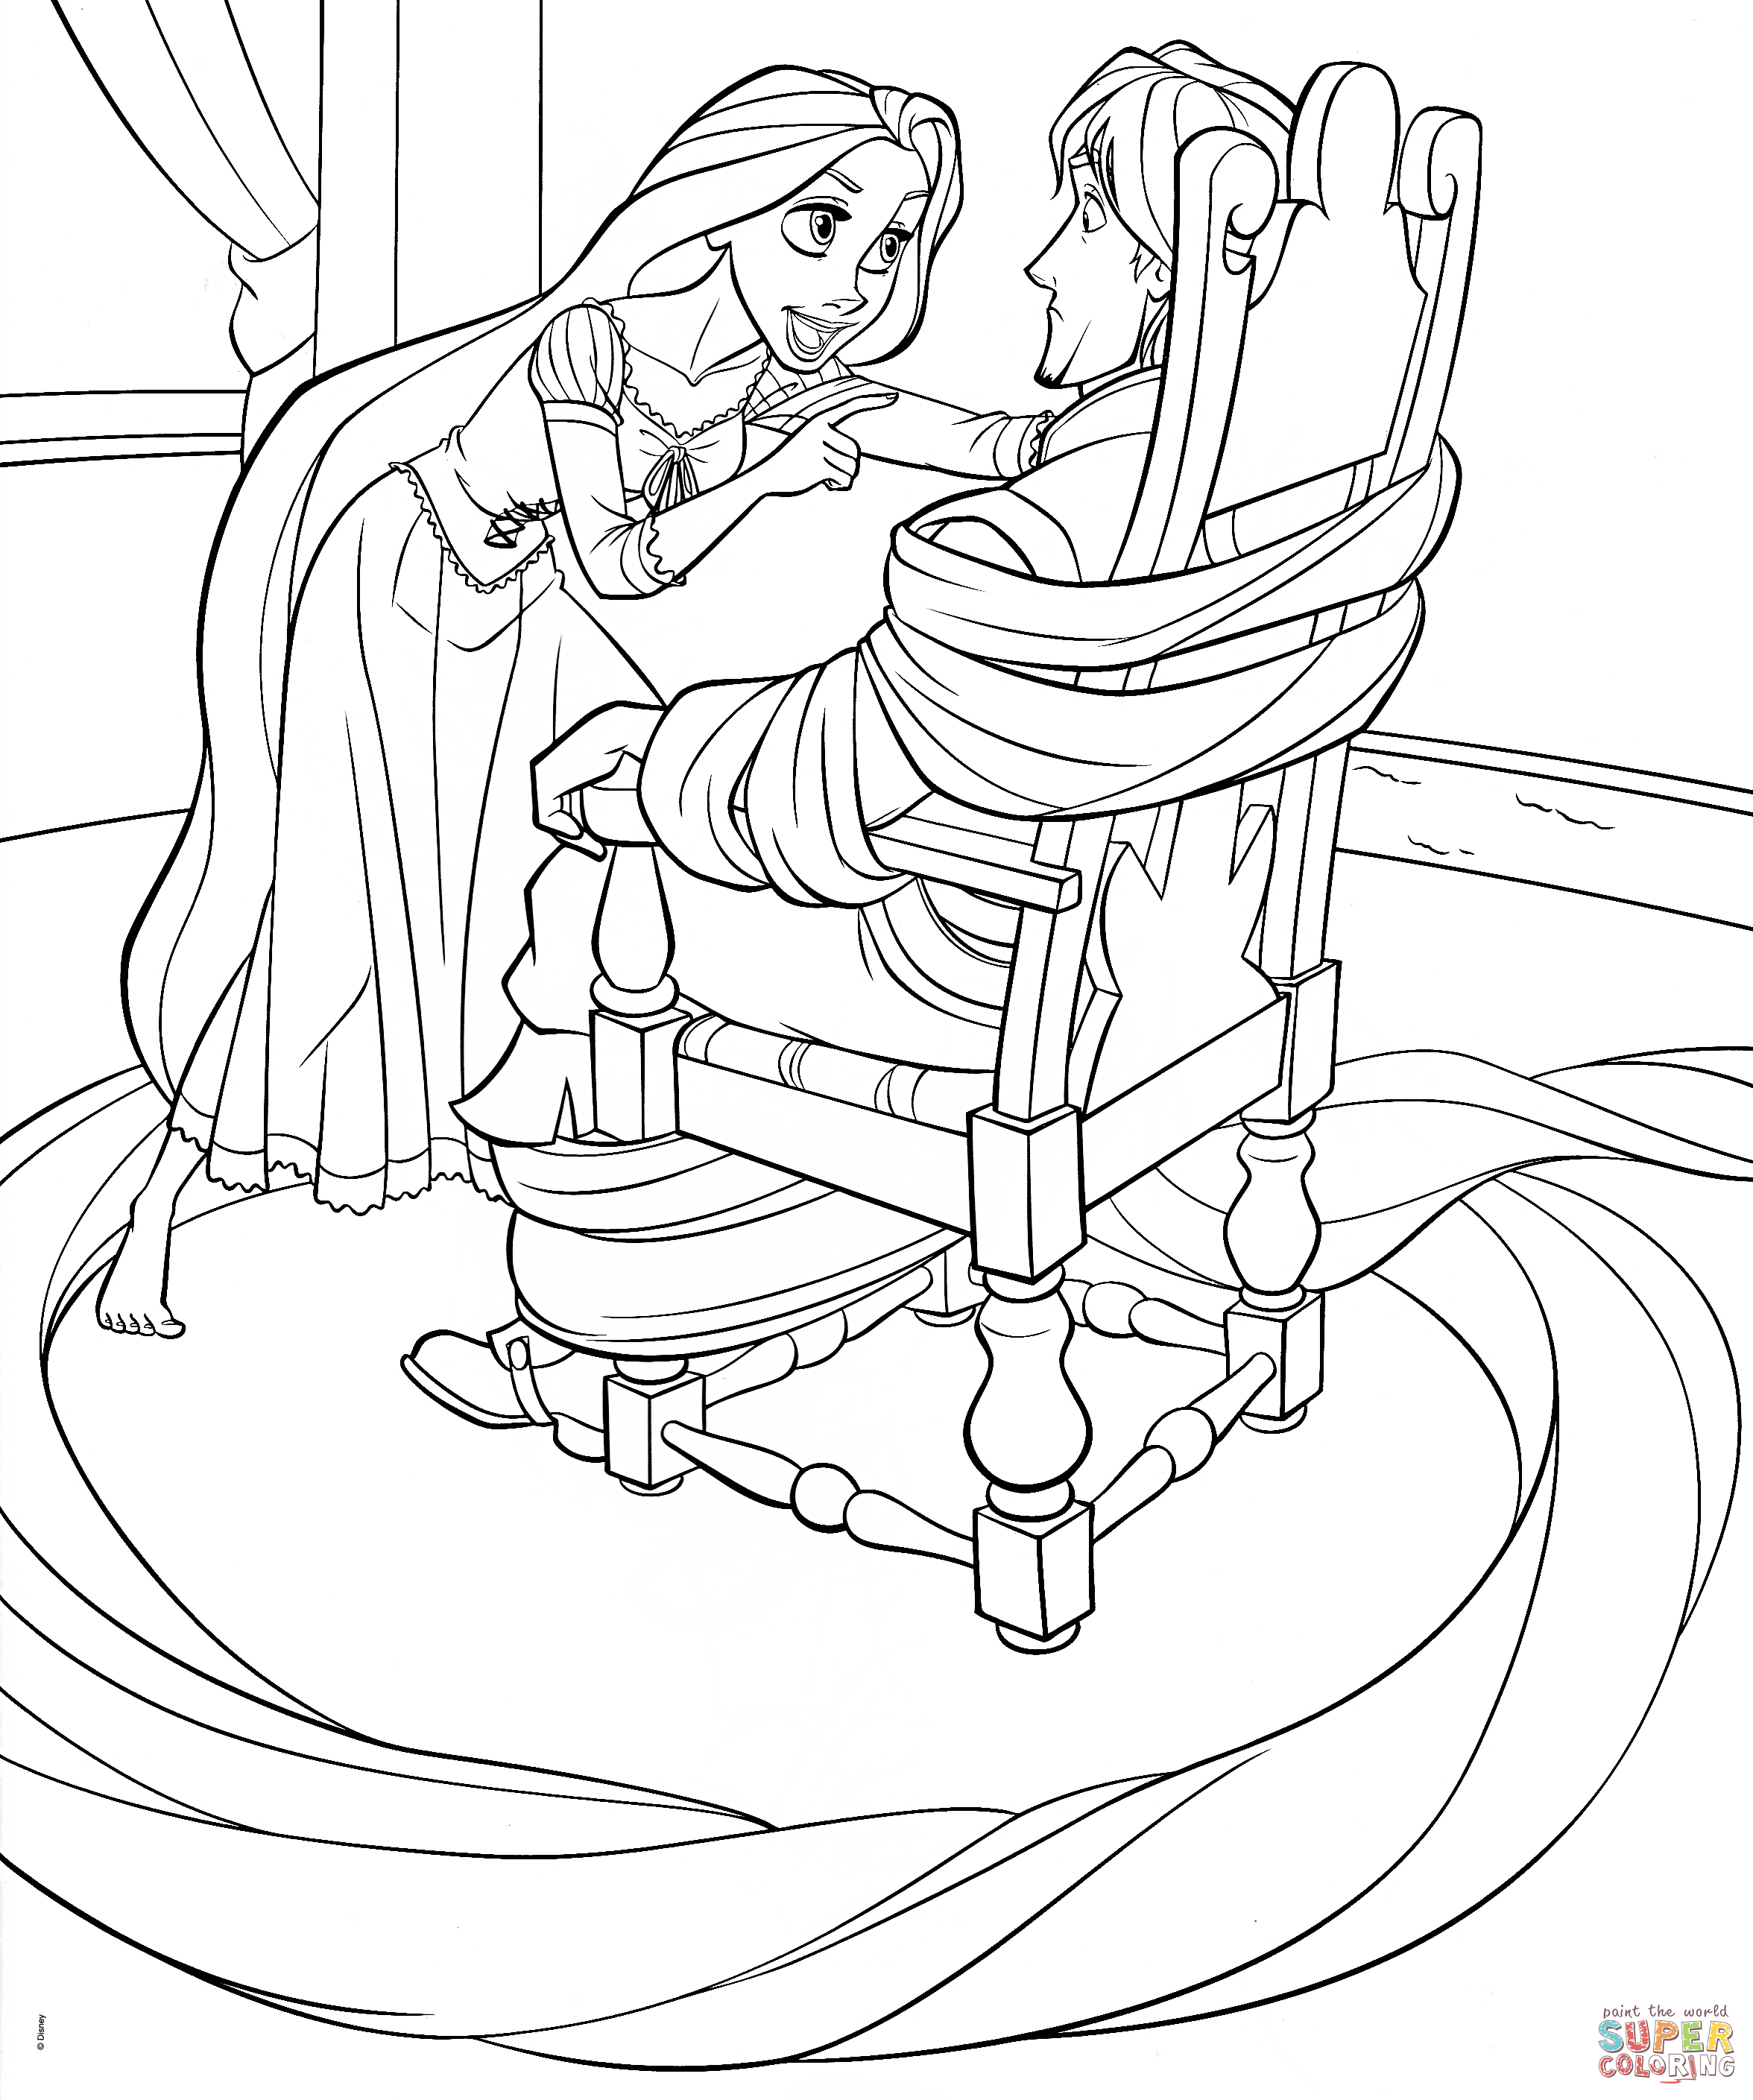 disney rapunzel pictures to color rapunzel ties up flynn coloring page free printable pictures to disney color rapunzel